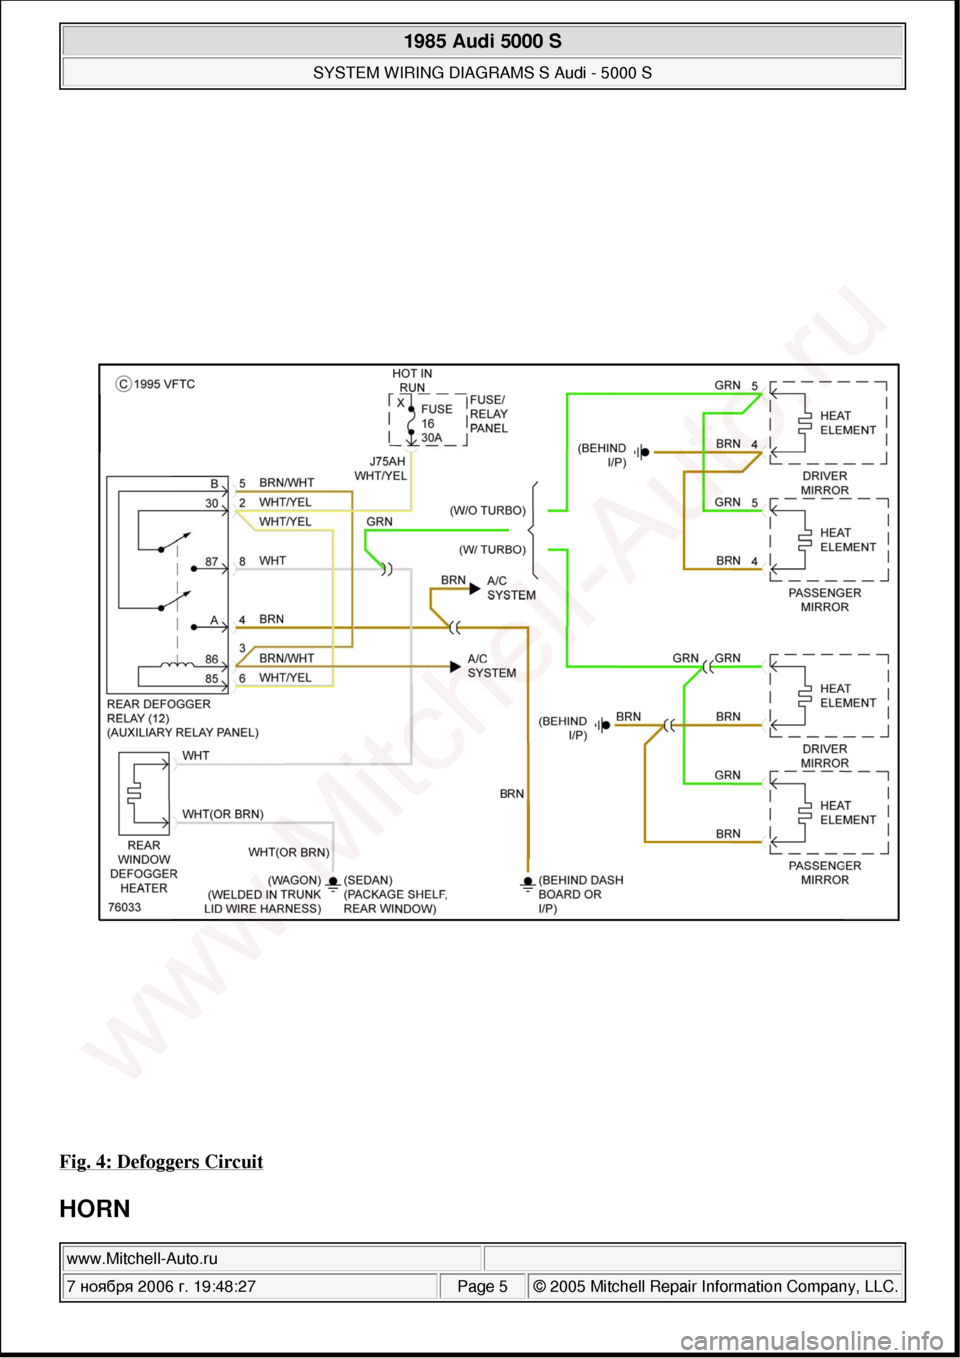 Audi 5000 Wiring Diagram Trusted Diagrams Q7 On Fuse Box 5000s 1985 C2 System Rh Carmanualsonline Info A6 4 2 Transmission 98 A4